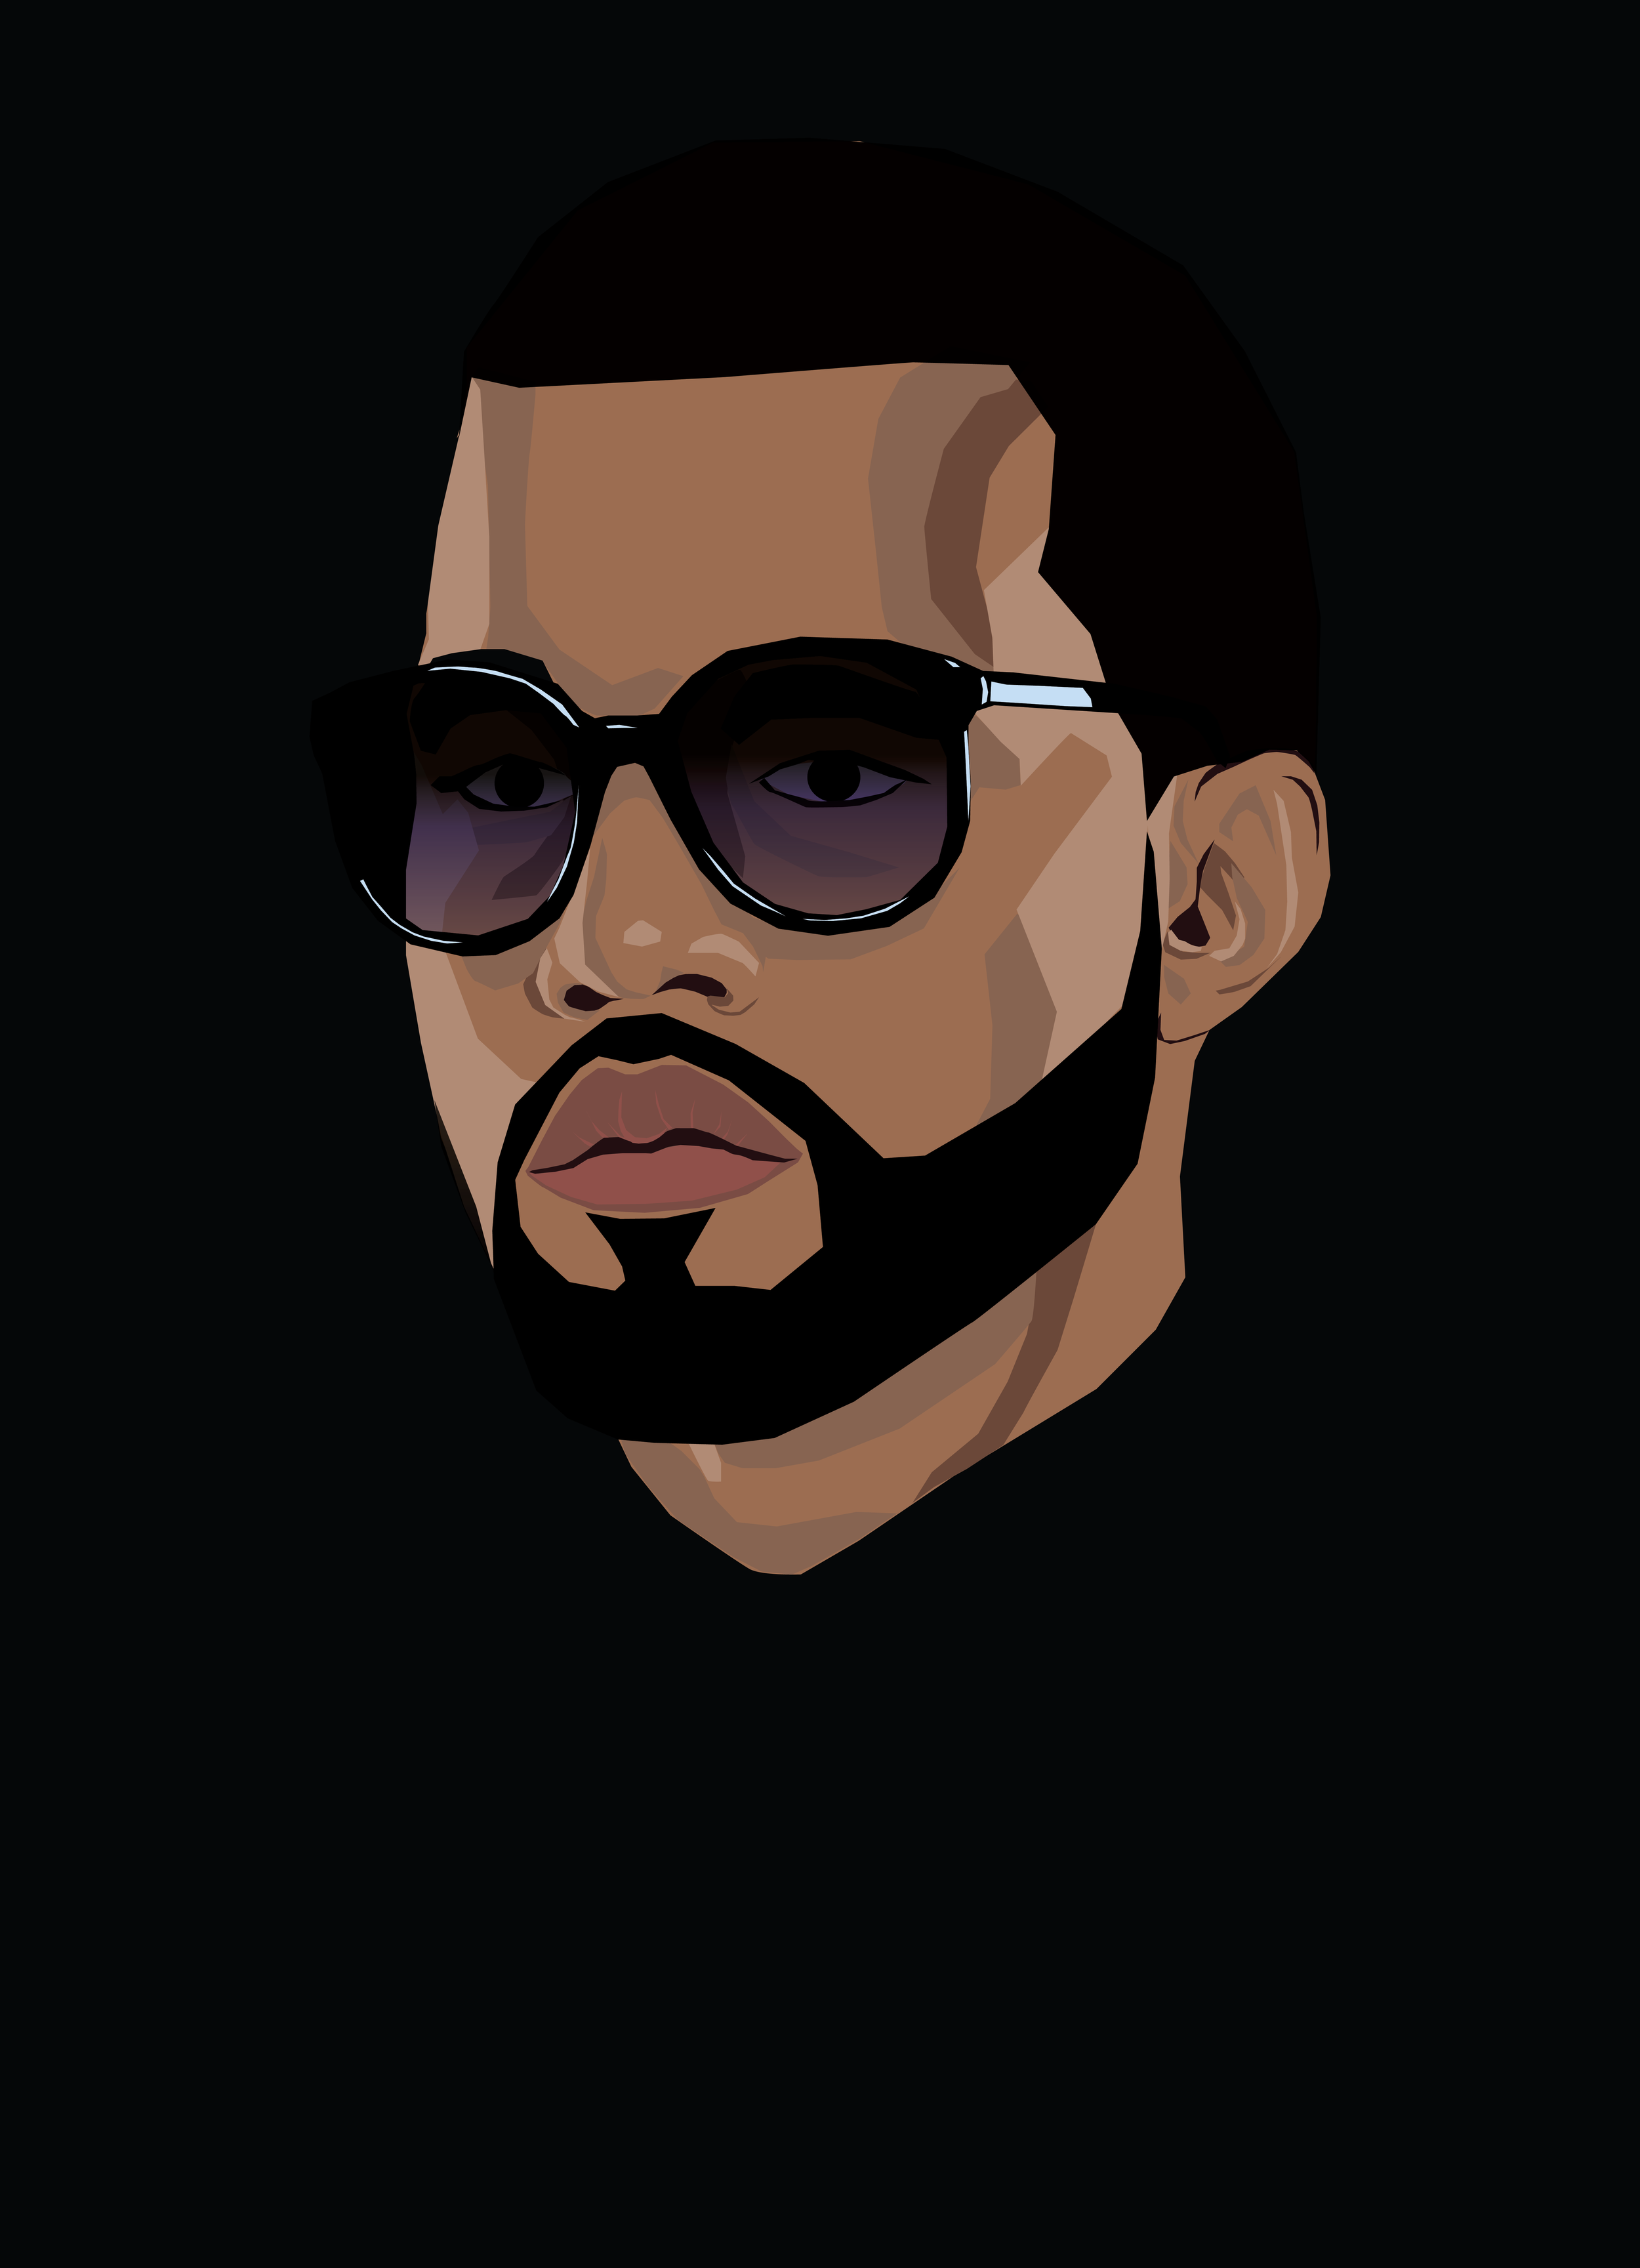 Poster_Yeezy.png